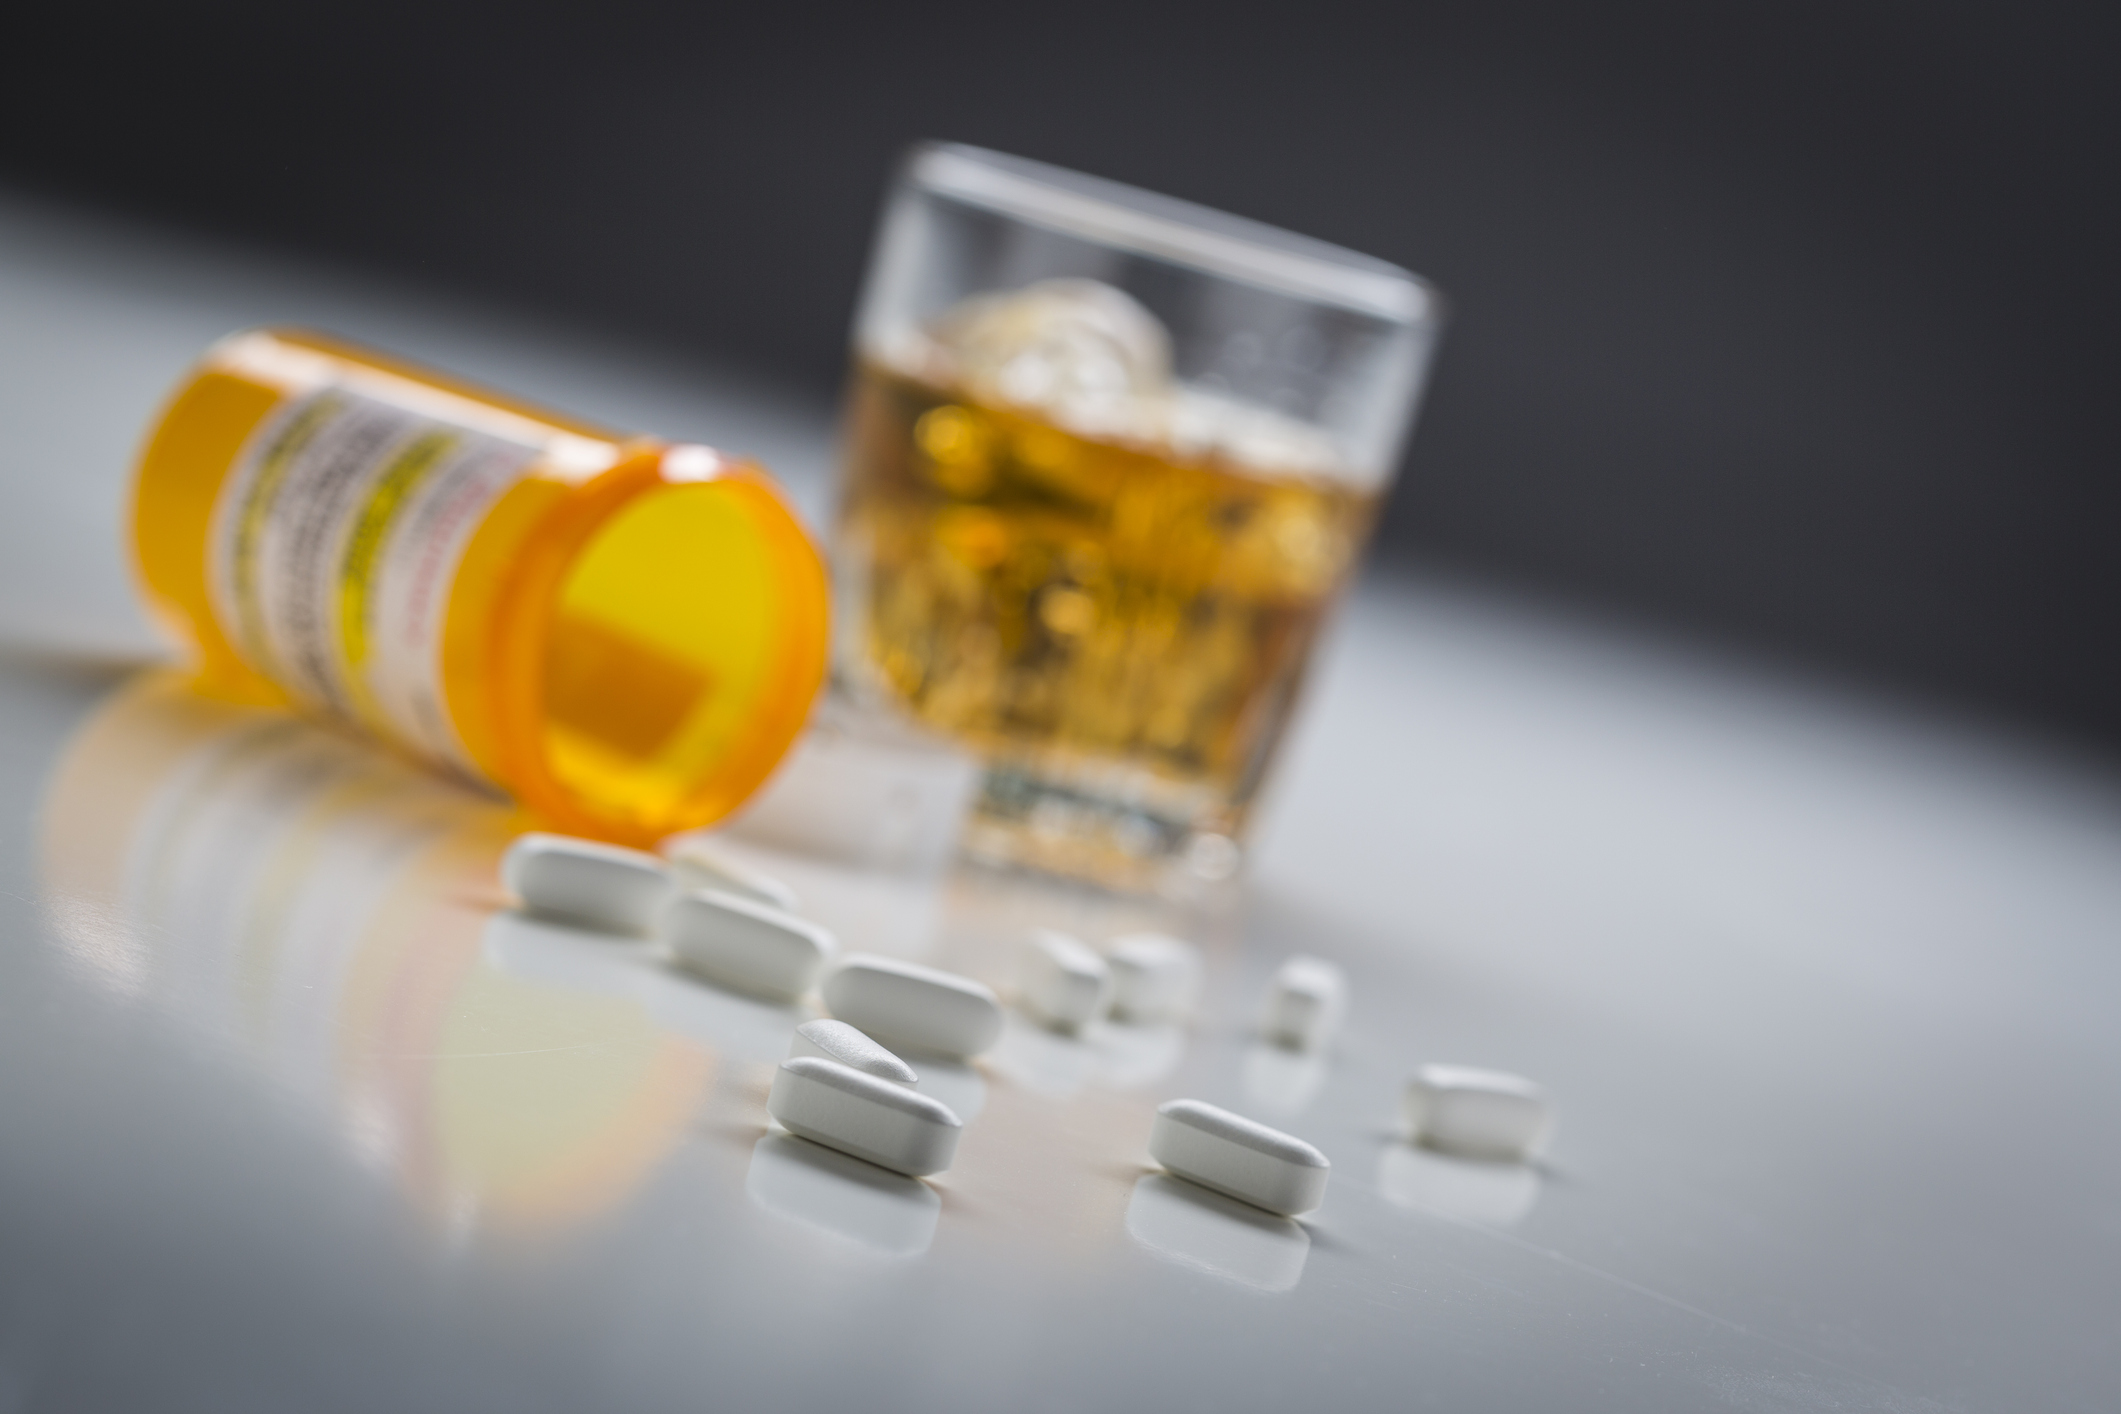 Prescription drugs spilled from fallen bottle near glass of alcohol (Thinkstock/PA)